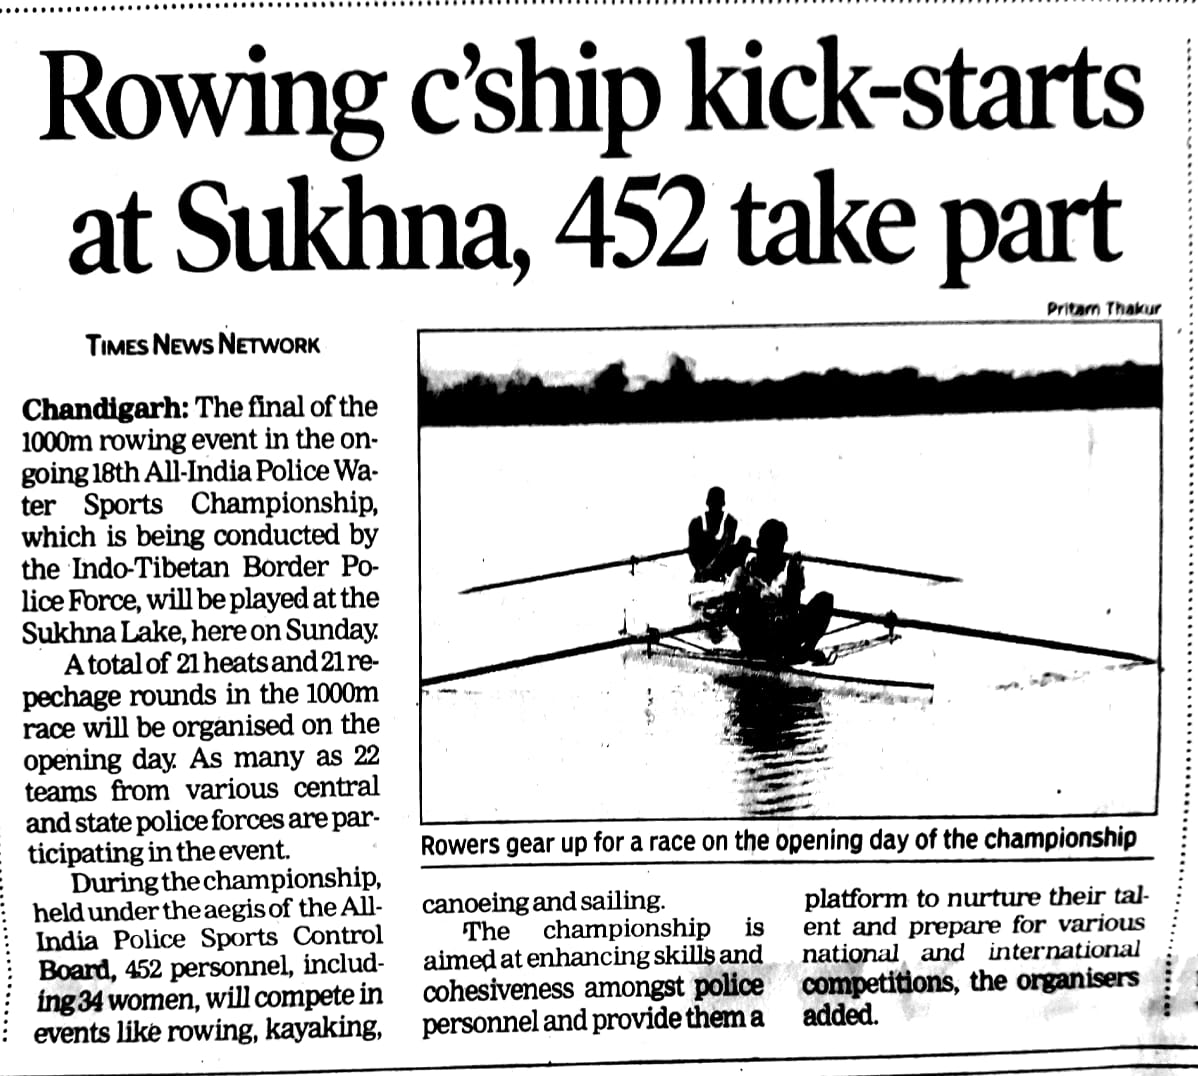 Rowing Championship kick starts at sukhna